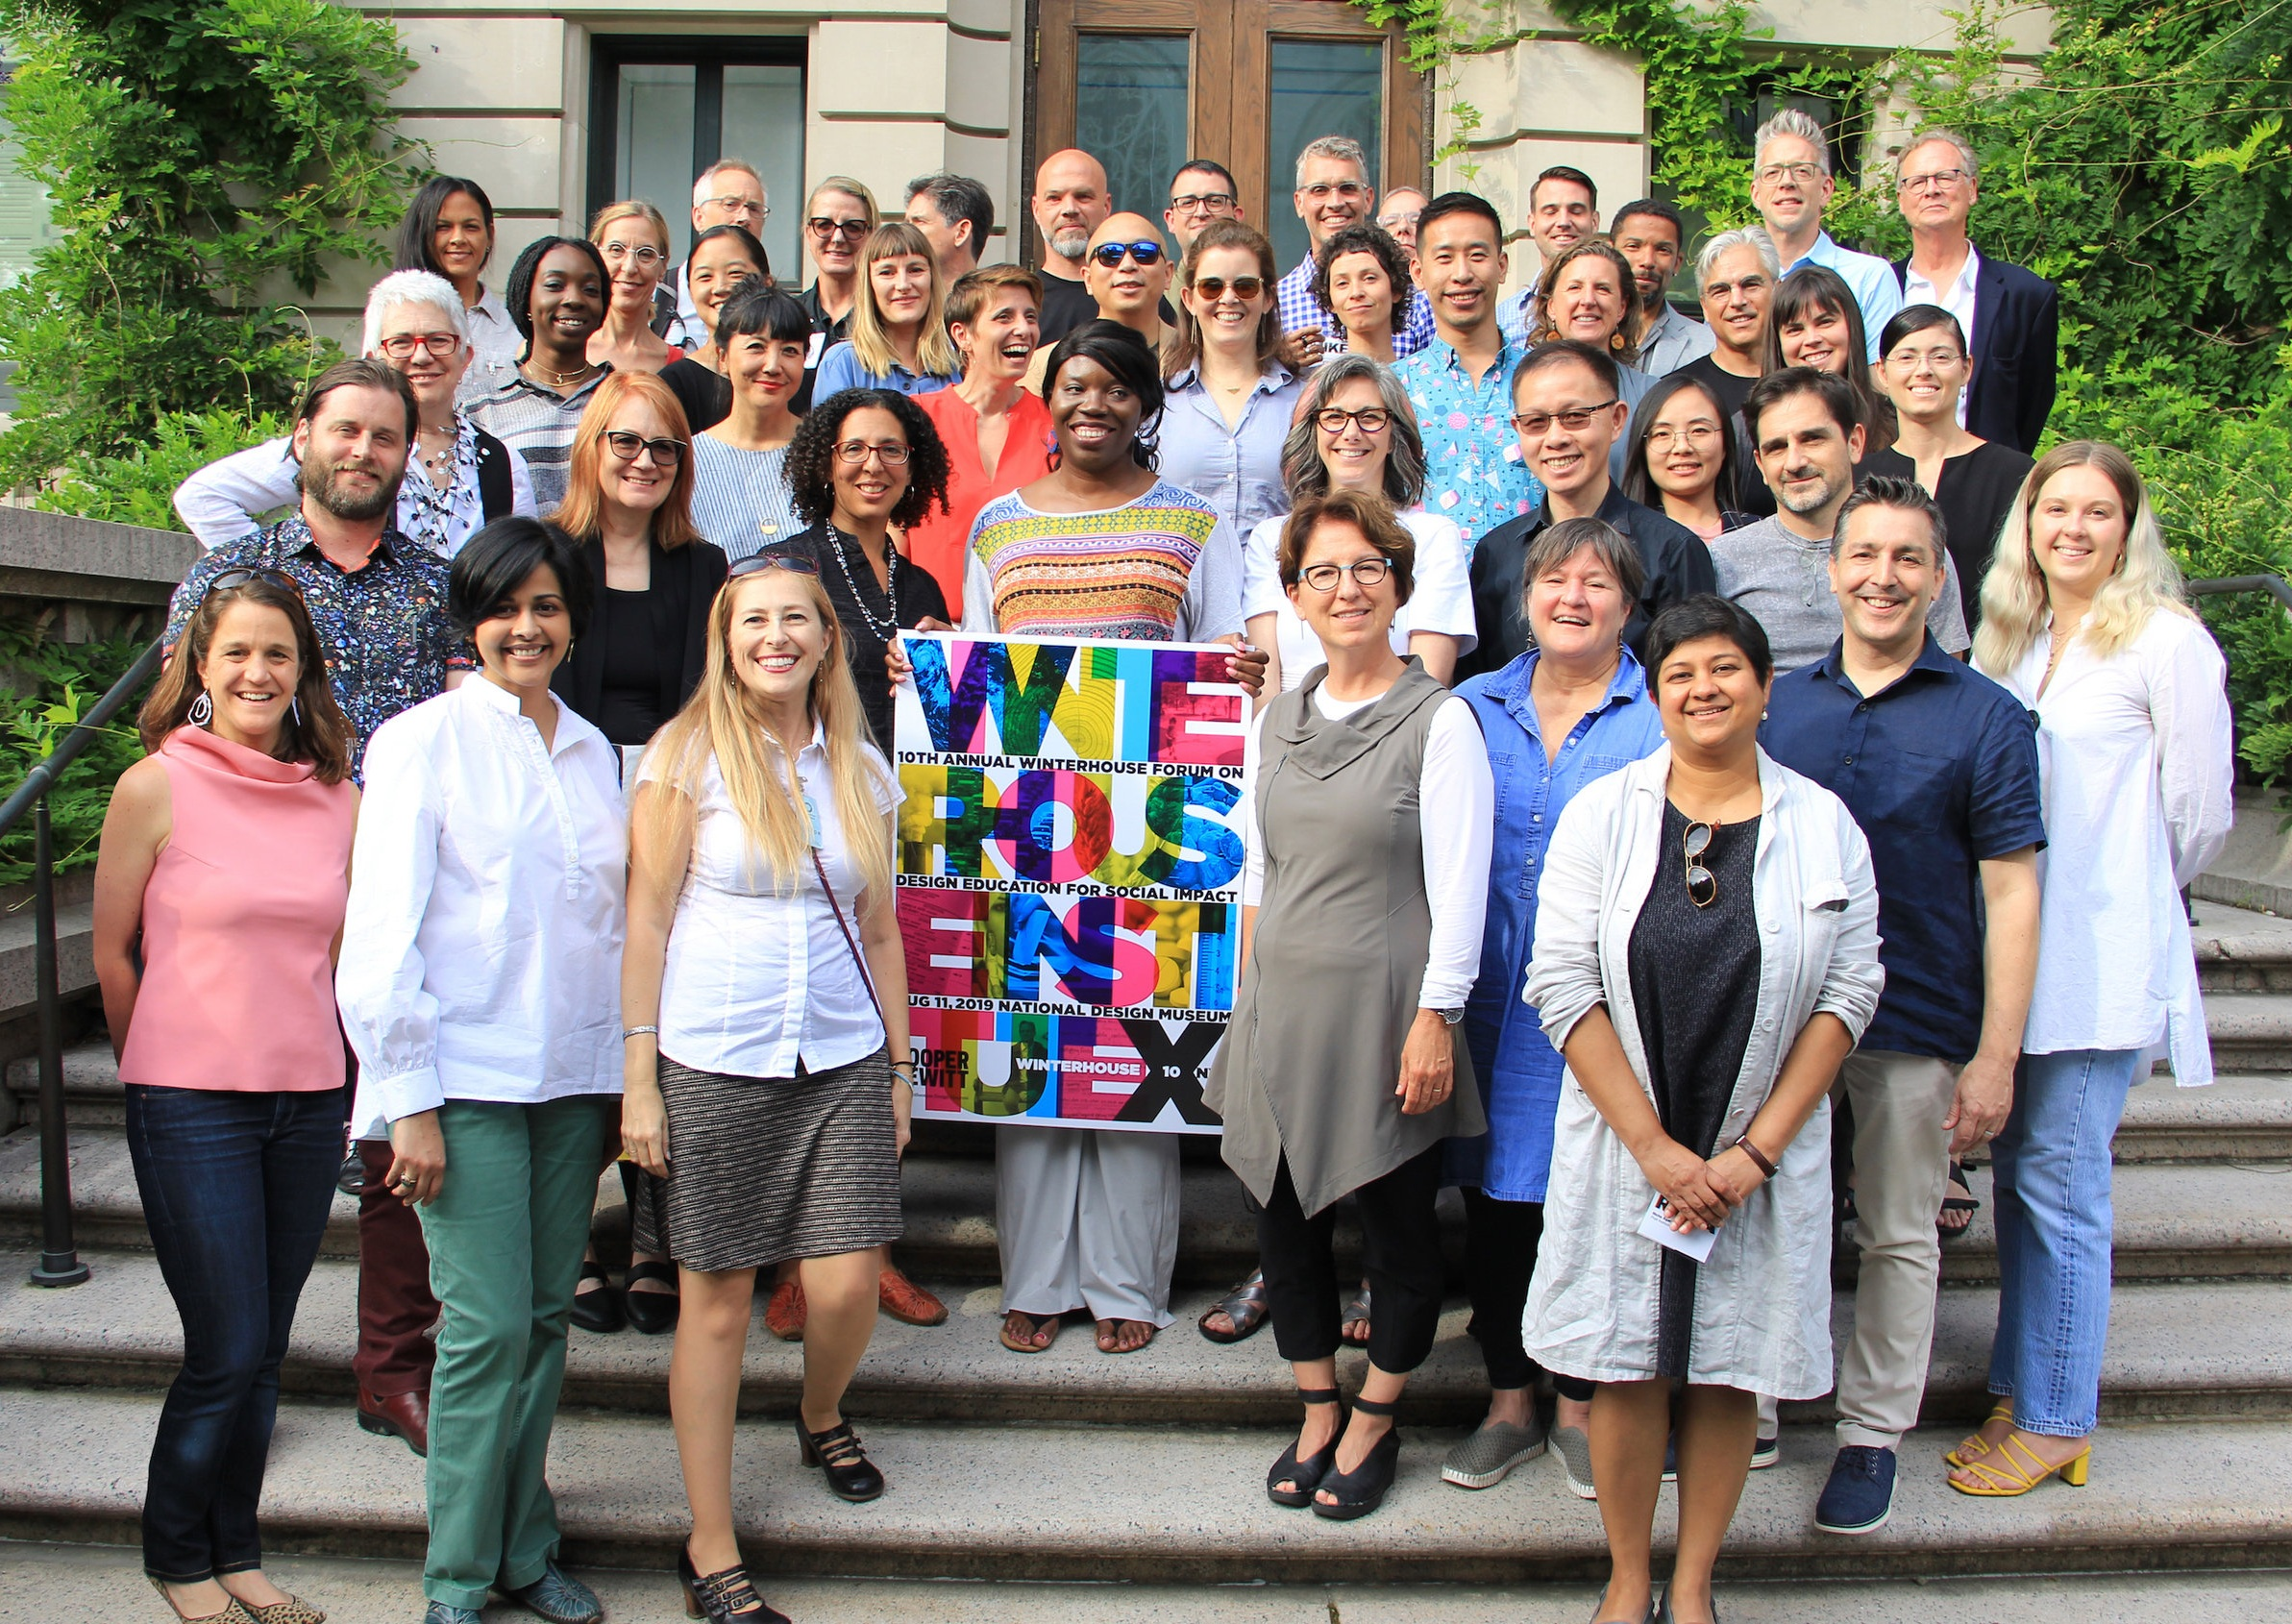 2019 Winterhouse Symposium participants at Cooper Hewitt